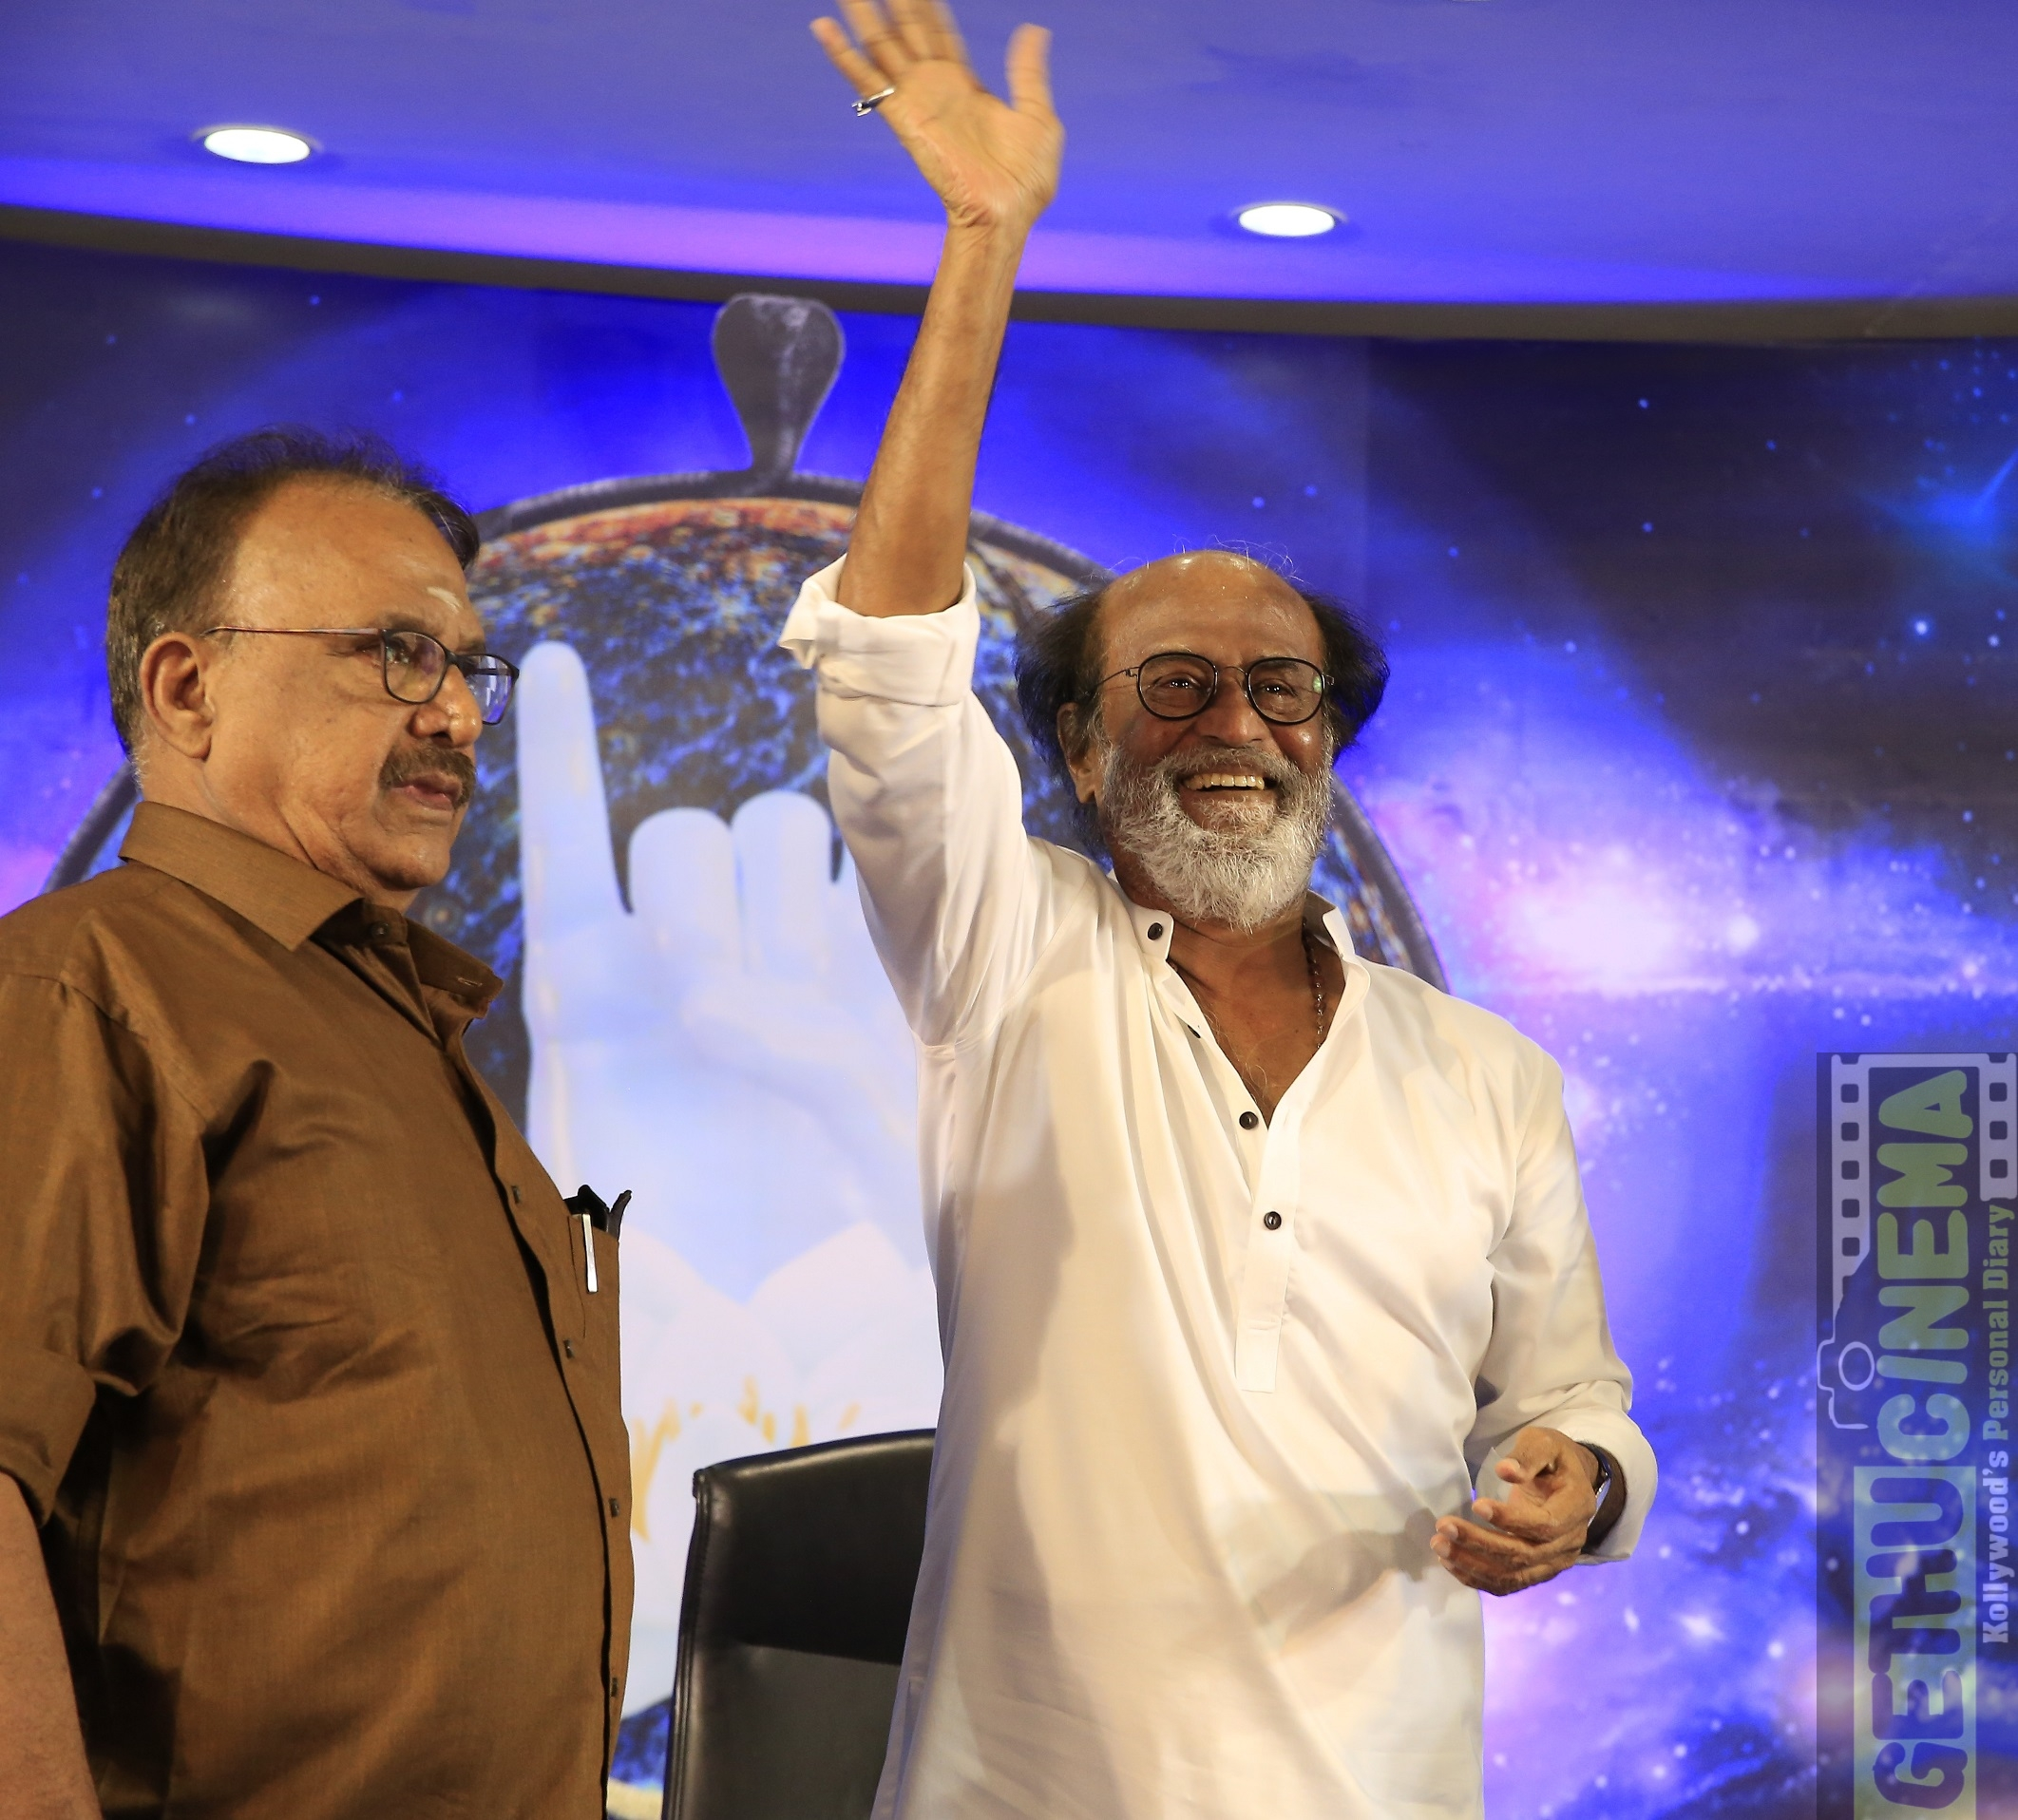 Rajinikanth Superstar (9) new yujk